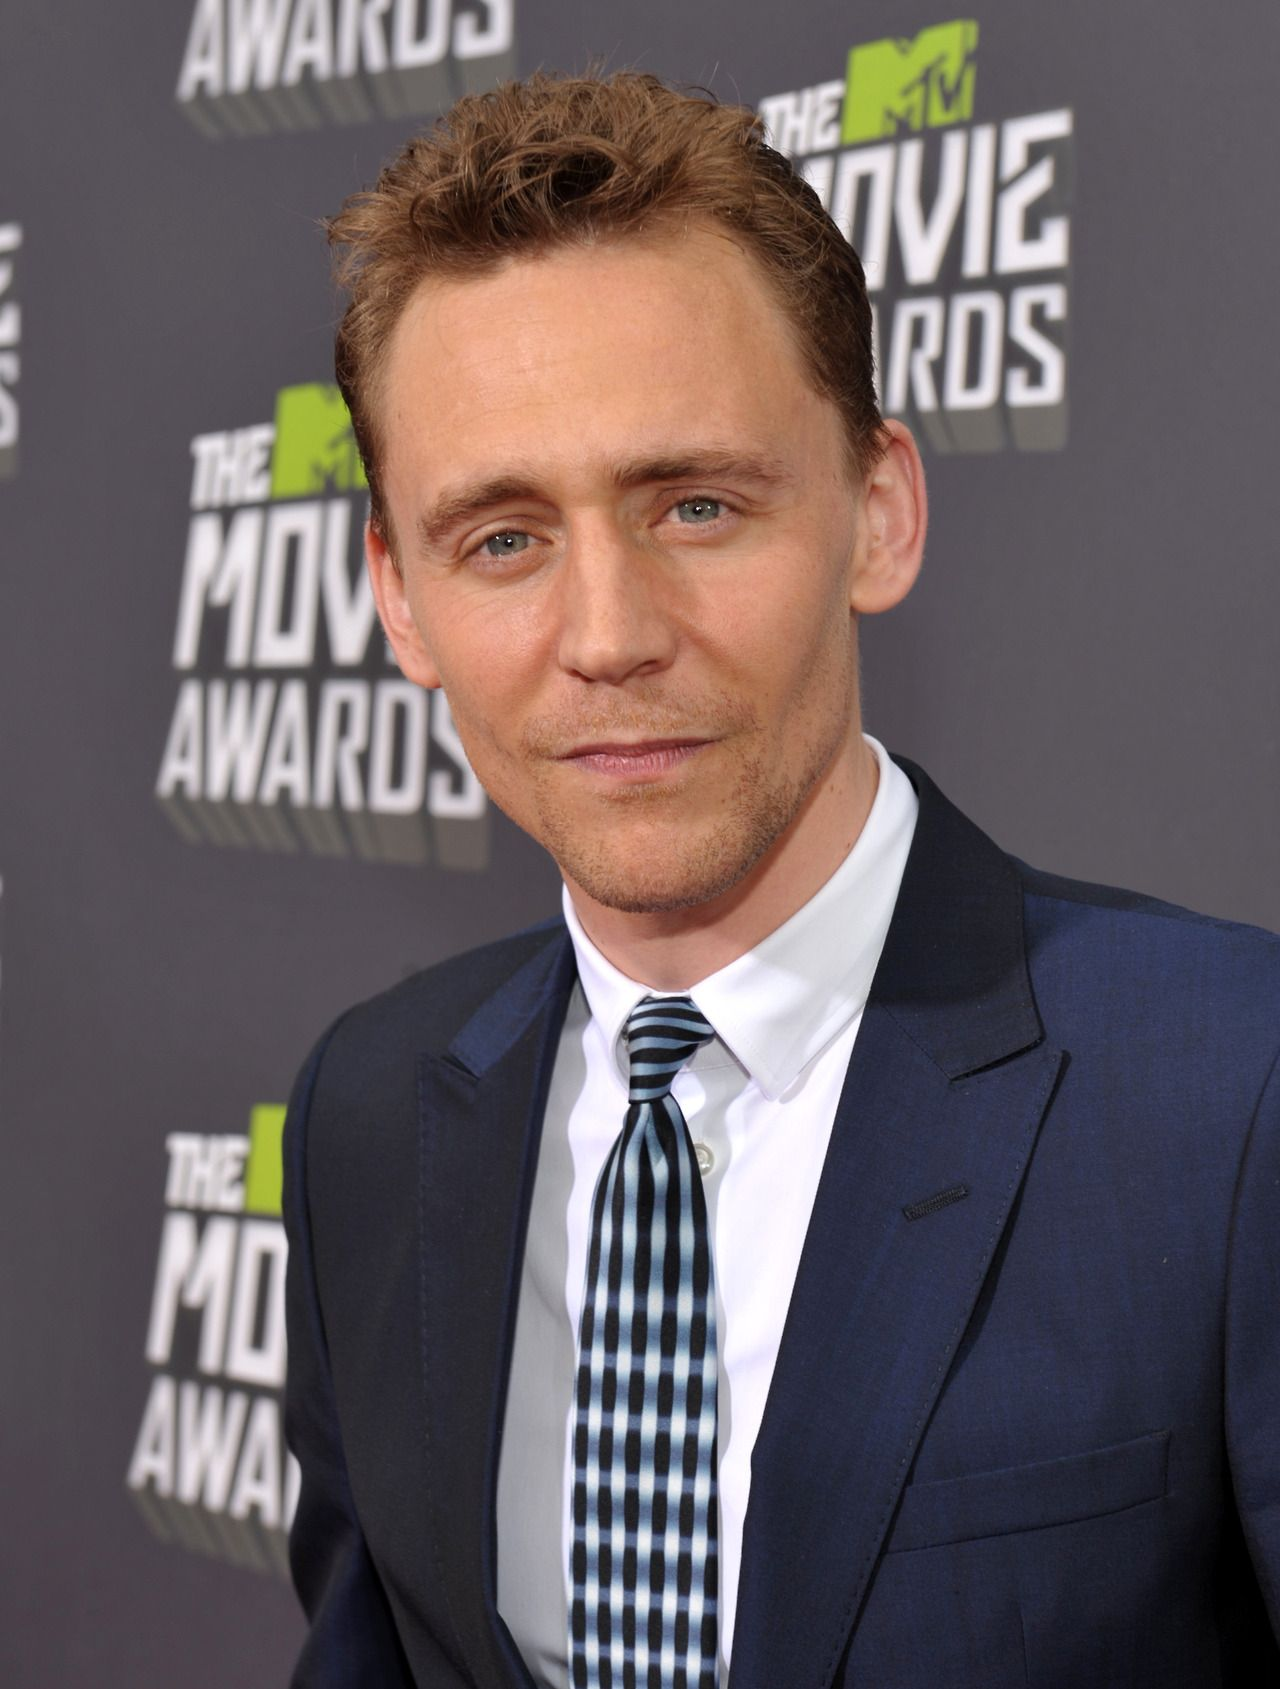 Tom Hiddleston arrives at the 2013 MTV Movie Awards at Sony Pictures Studios on April 14, 2013 in Culver City, California [HQ]